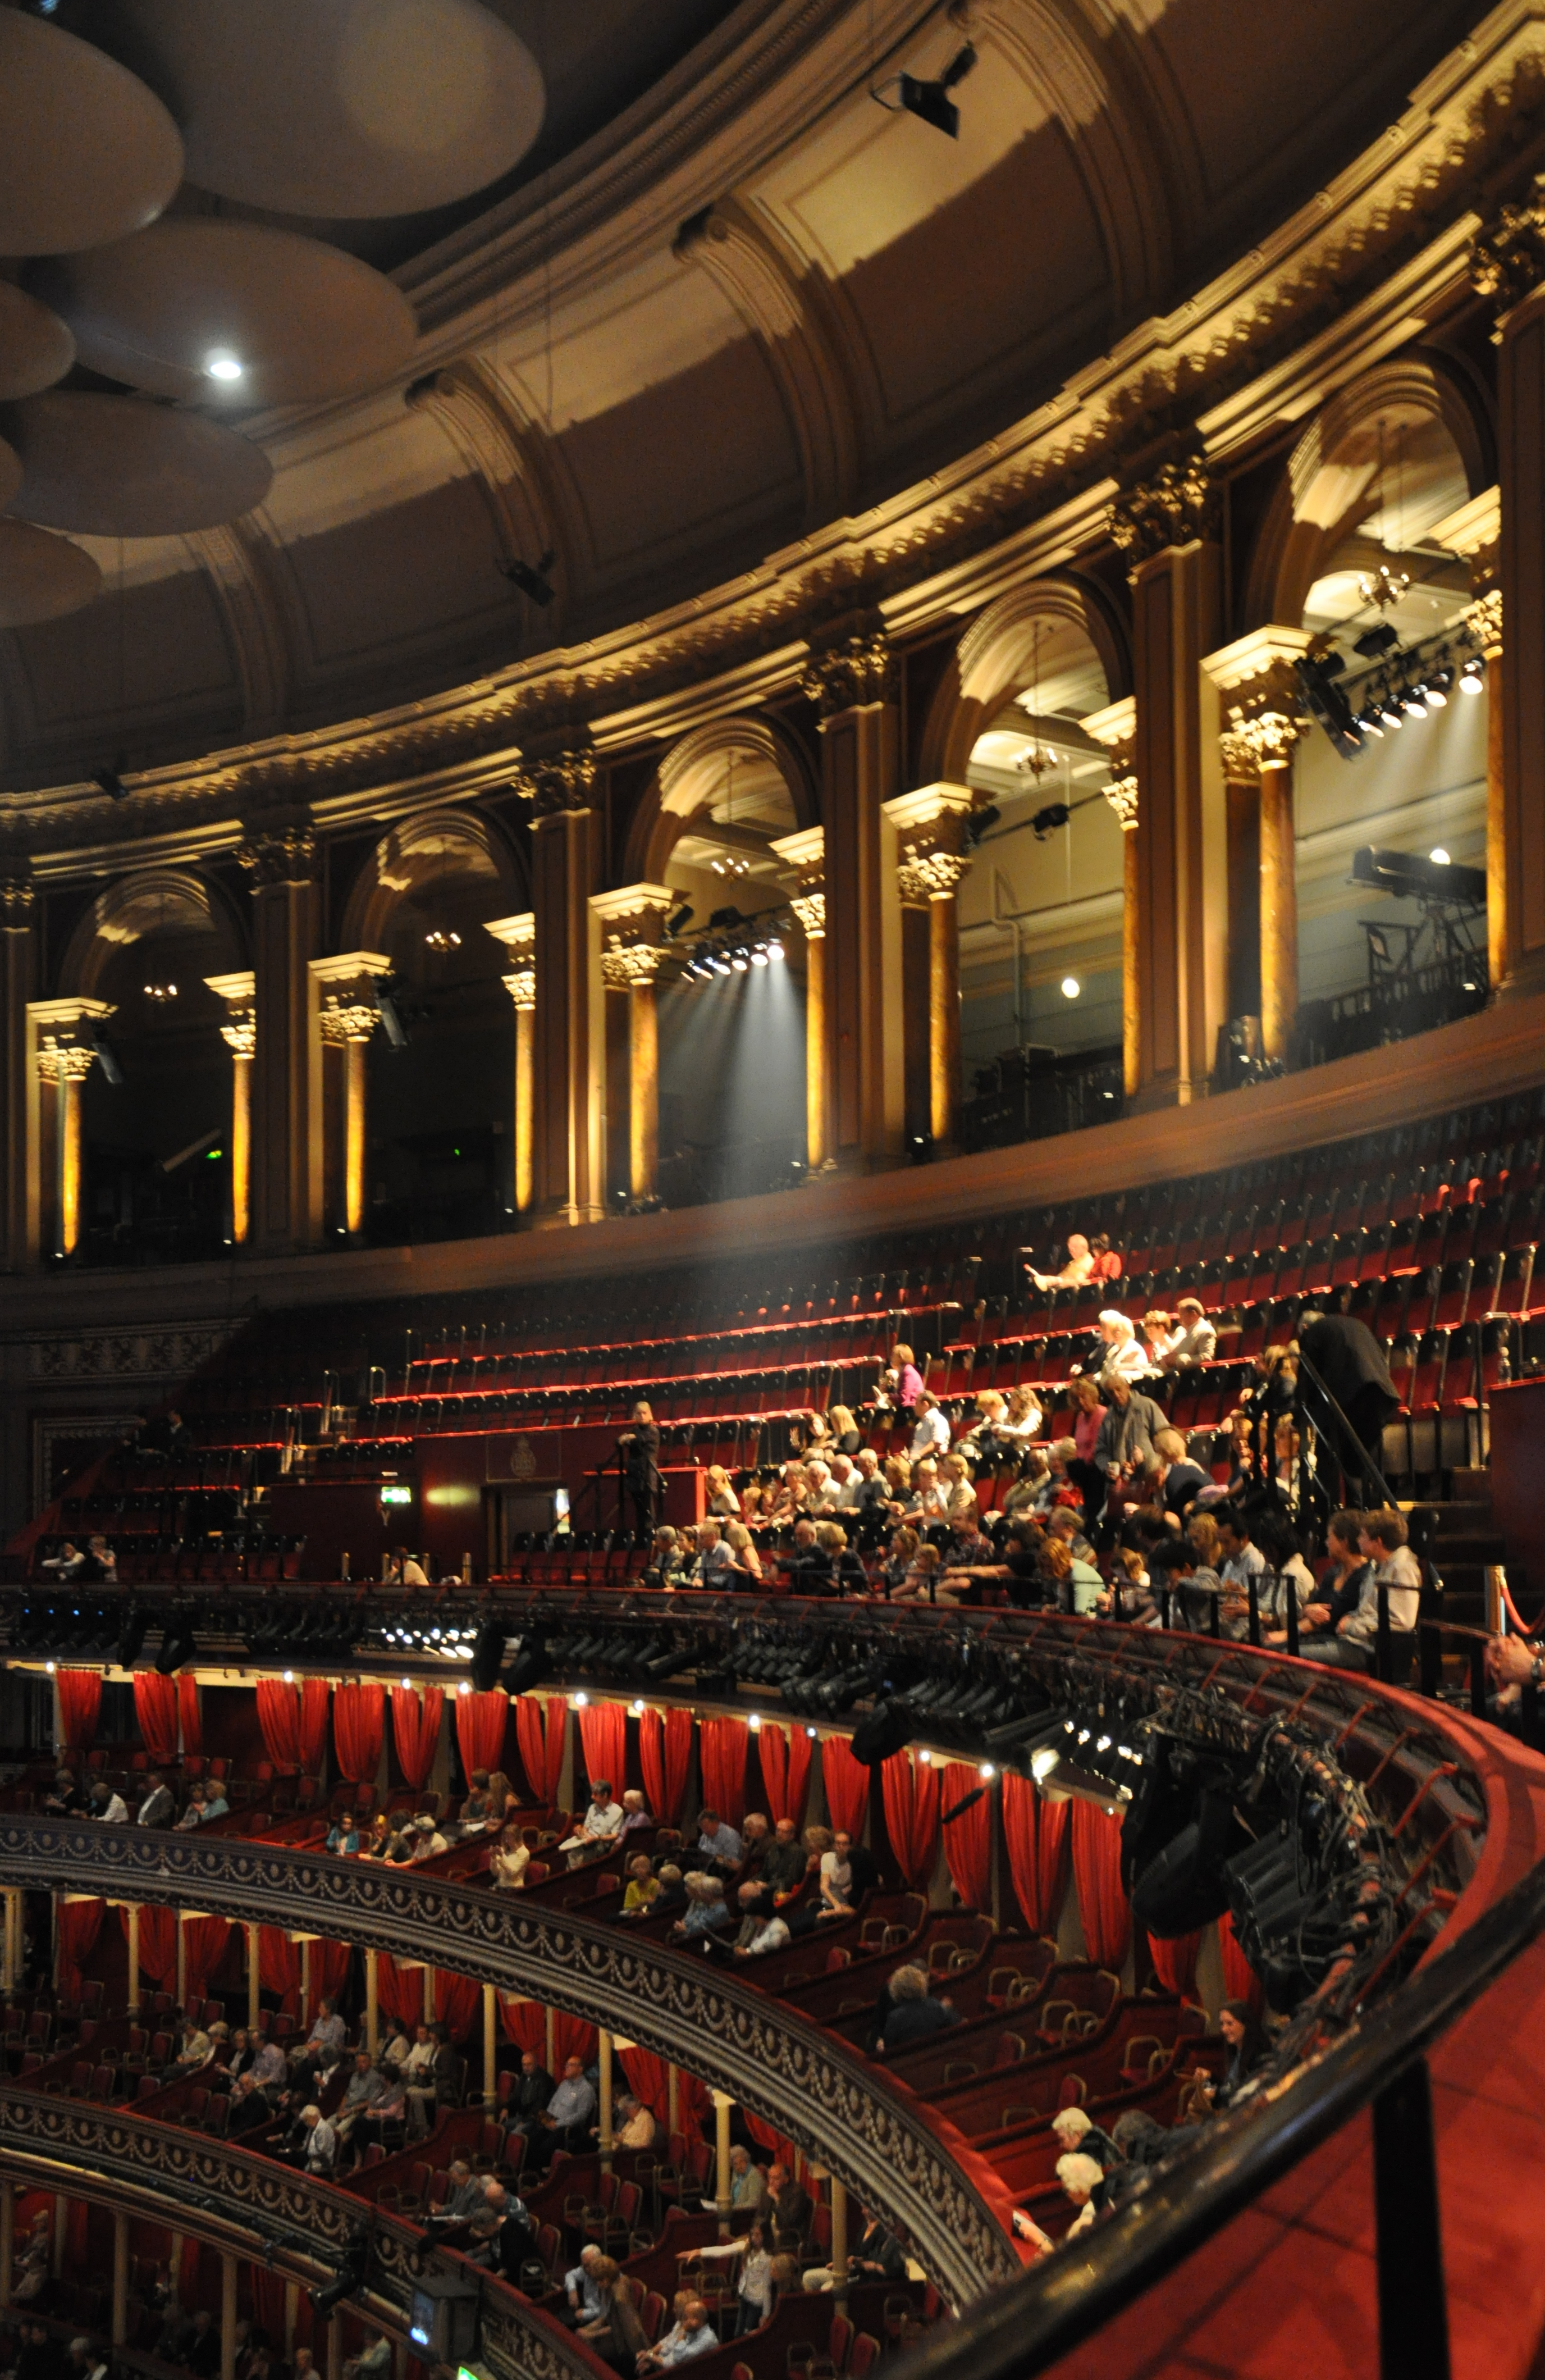 Royal albert hall interior images for Hall interior images